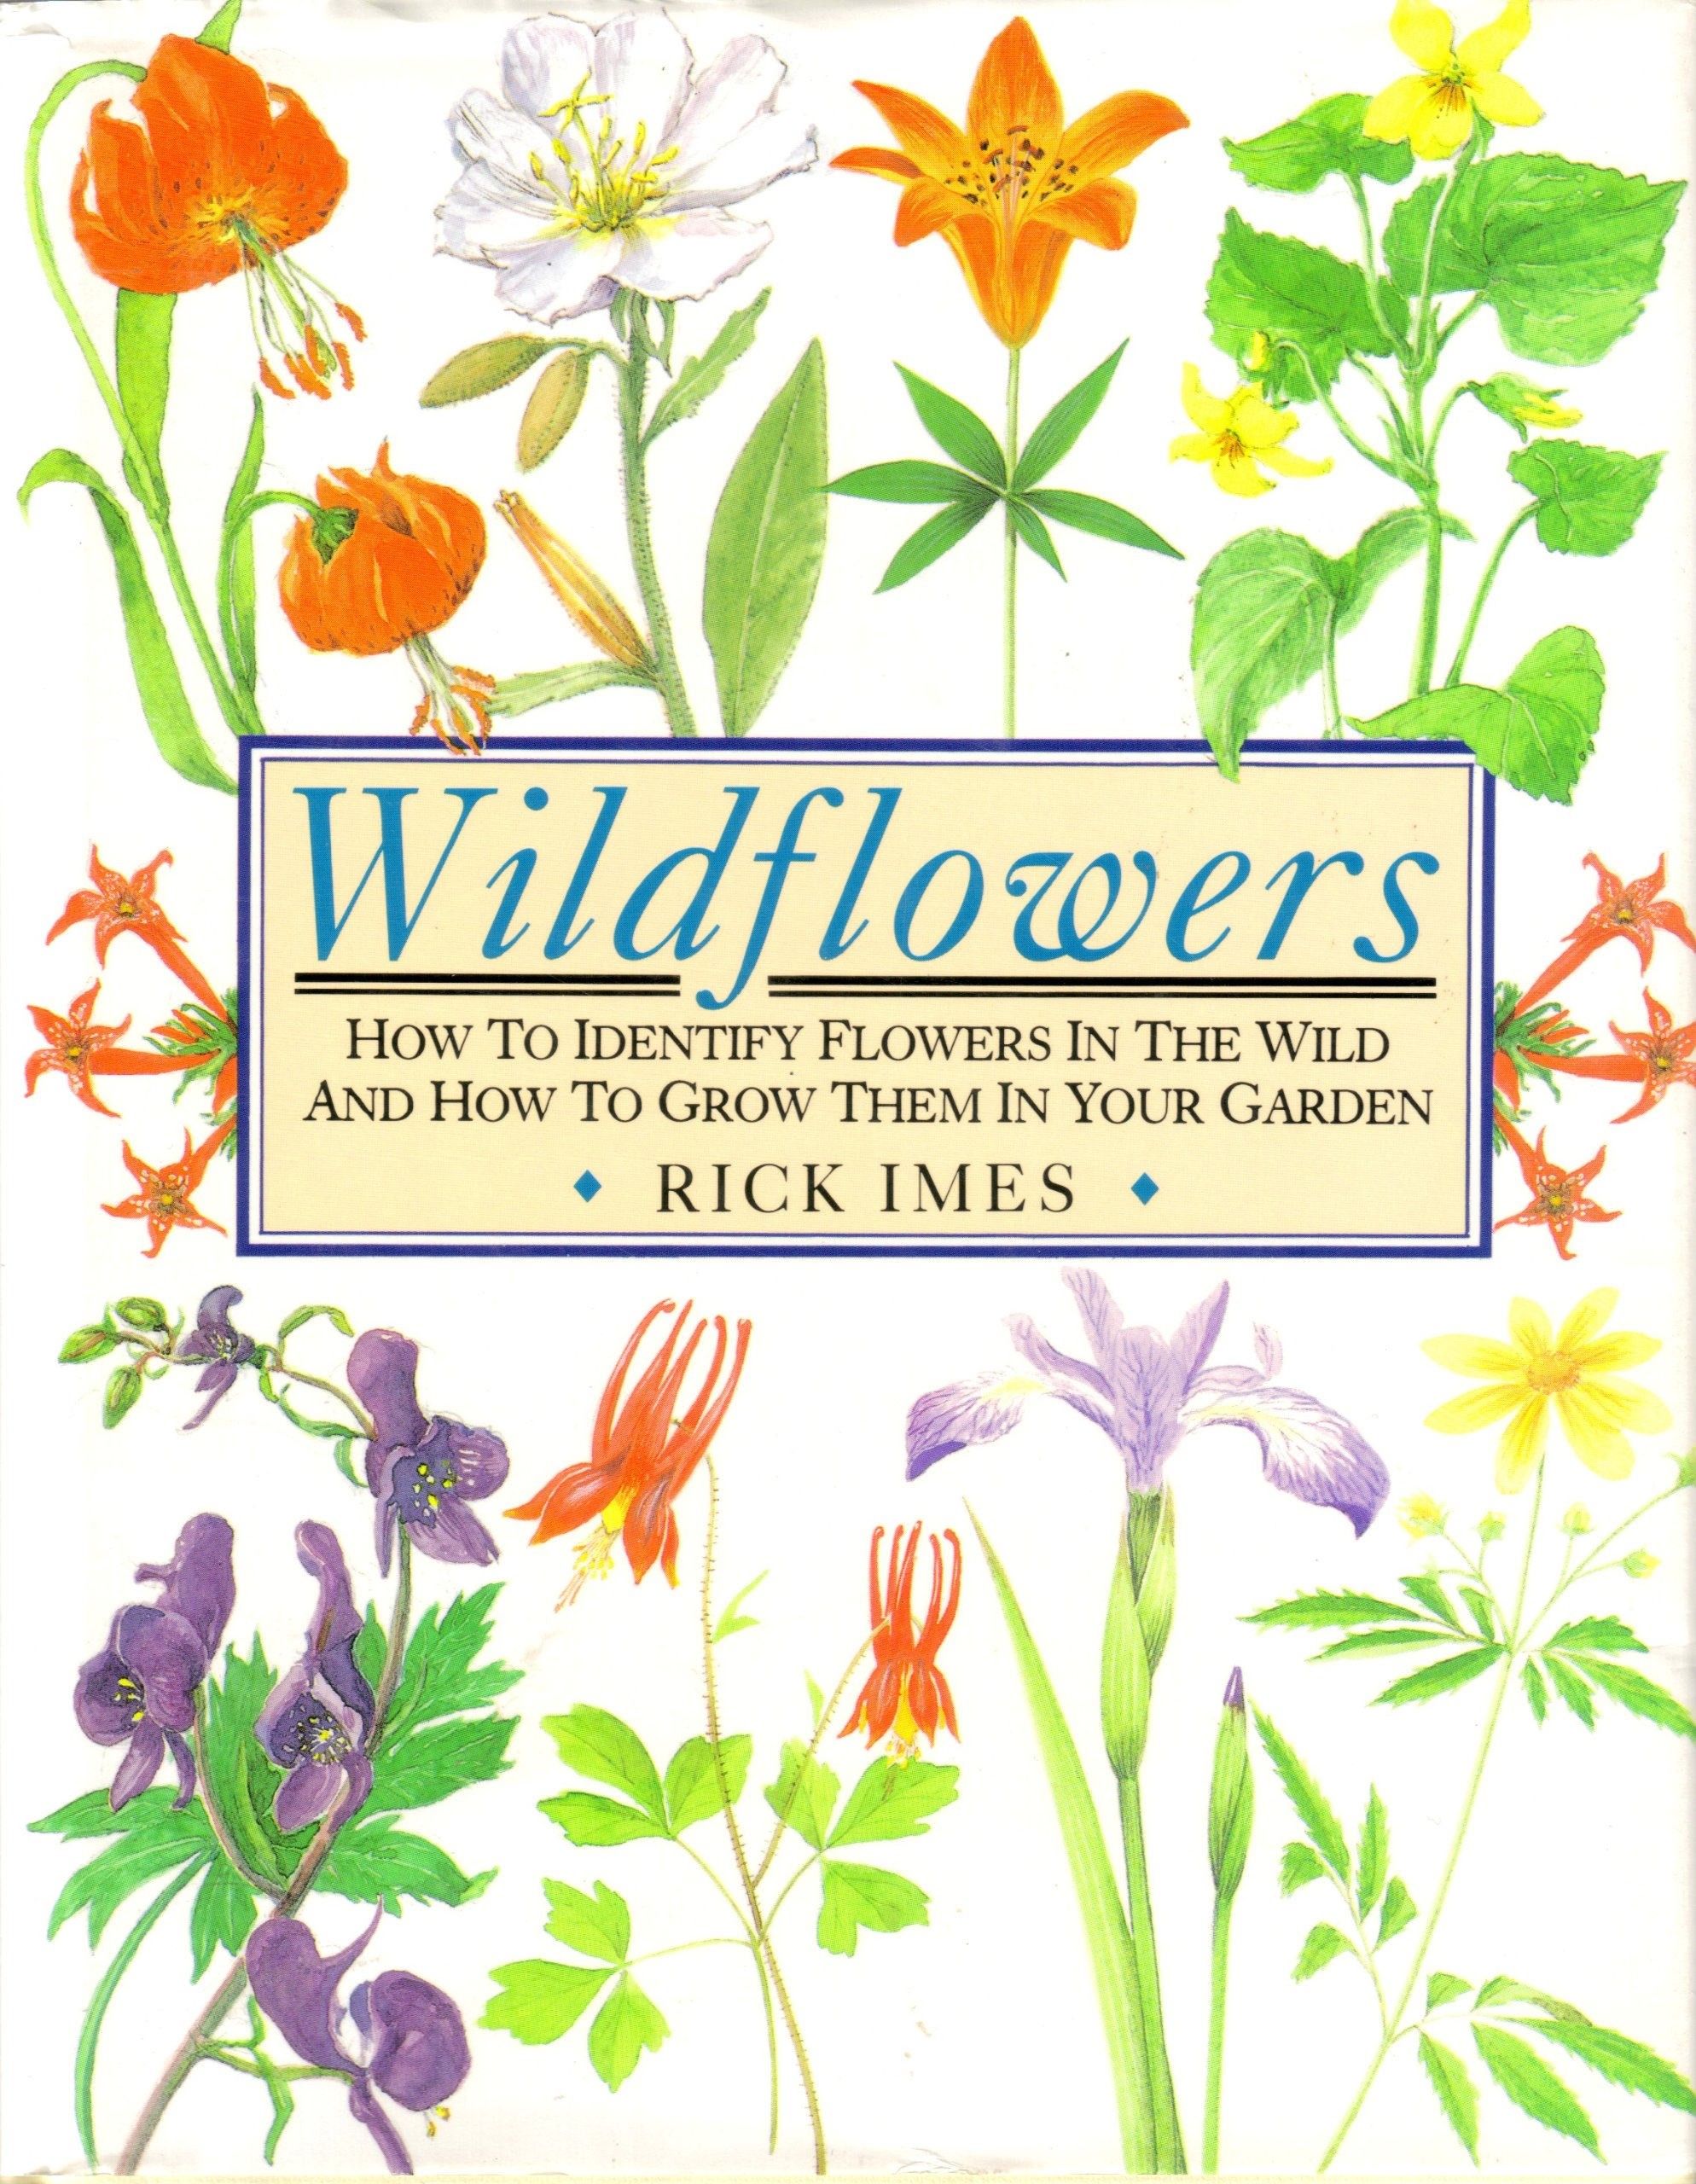 Wildflowers How To Identify Flowers In The Wild And How To Grow